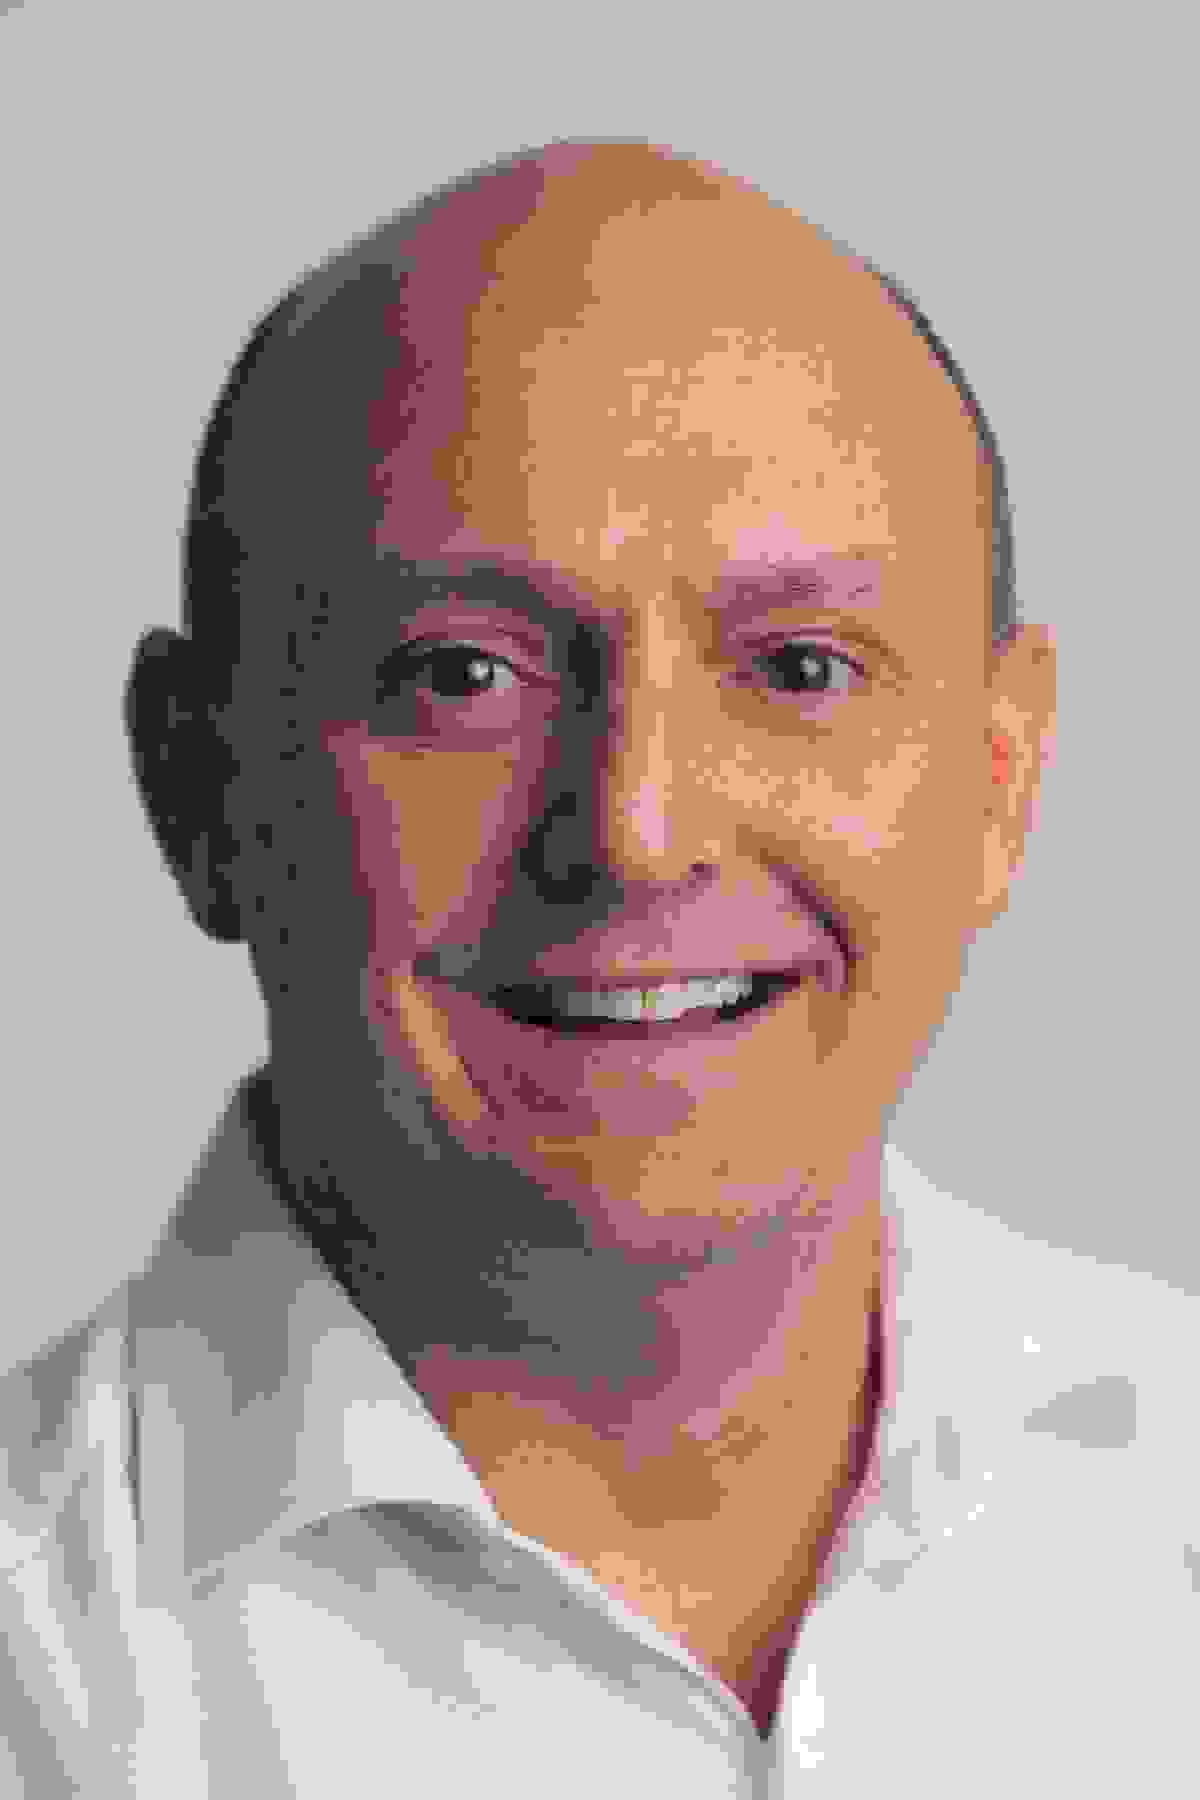 Richard Denniss: Curing Affluenza